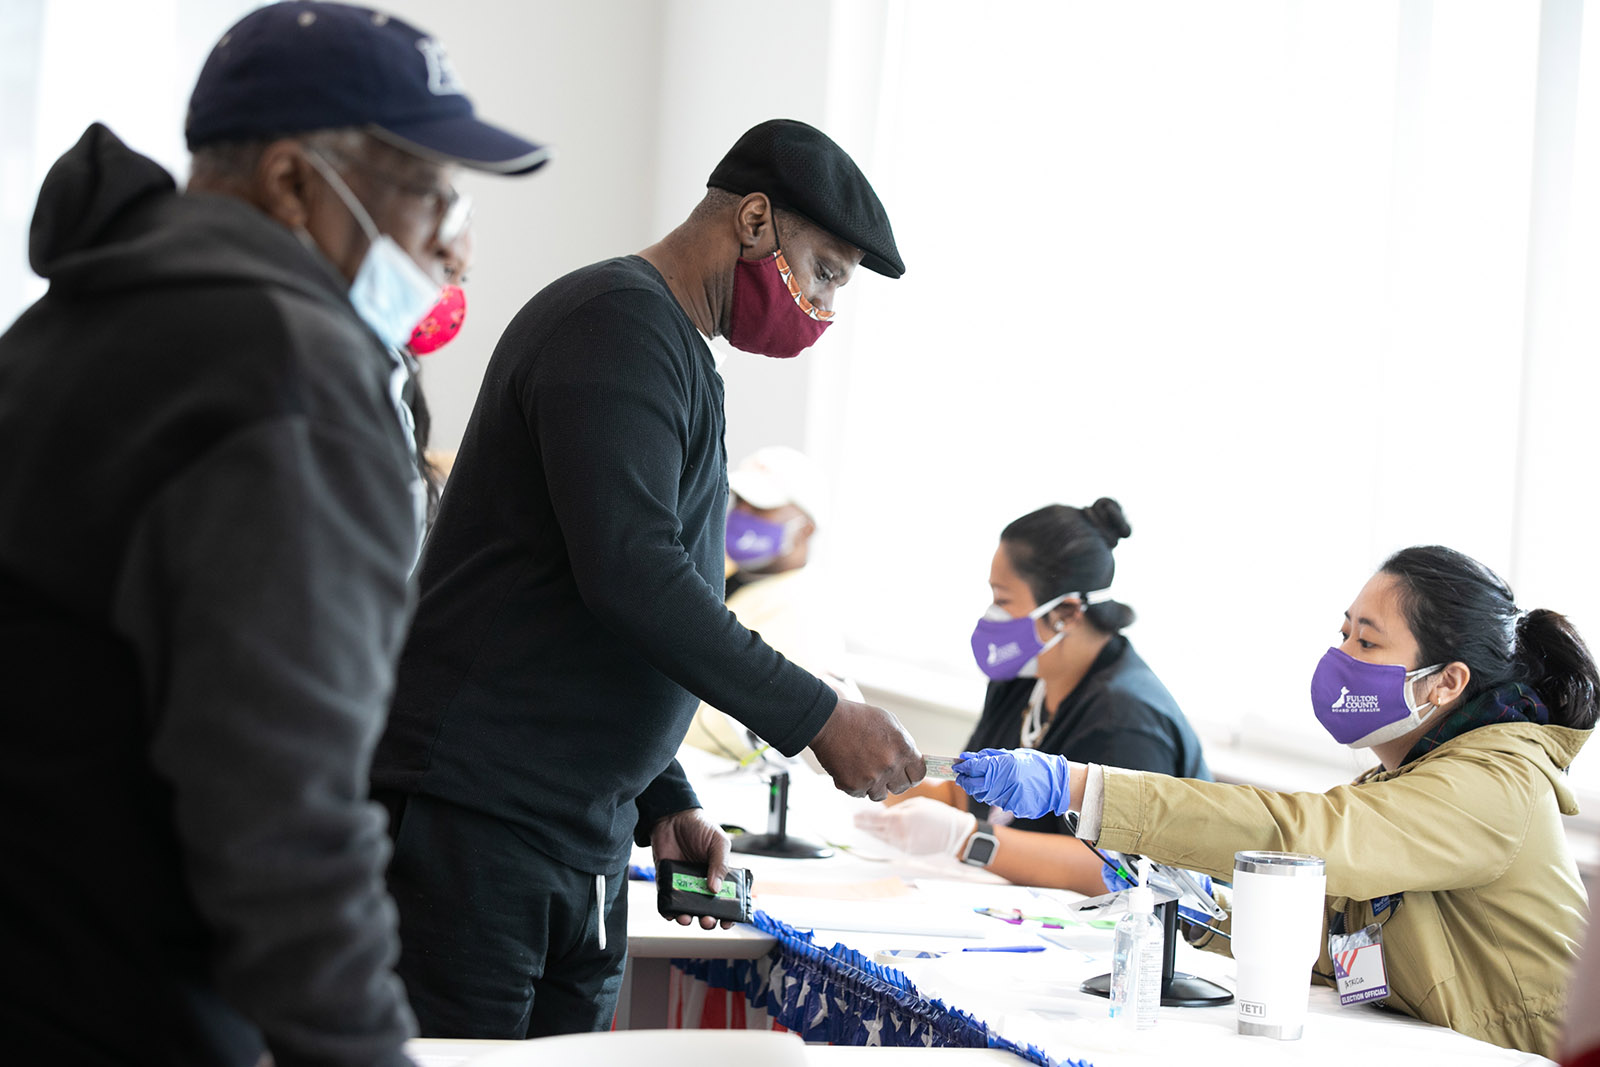 Voters check-in with poll workers to cast their ballots at the Metropolitan Library on November 3, in Atlanta, Georgia.